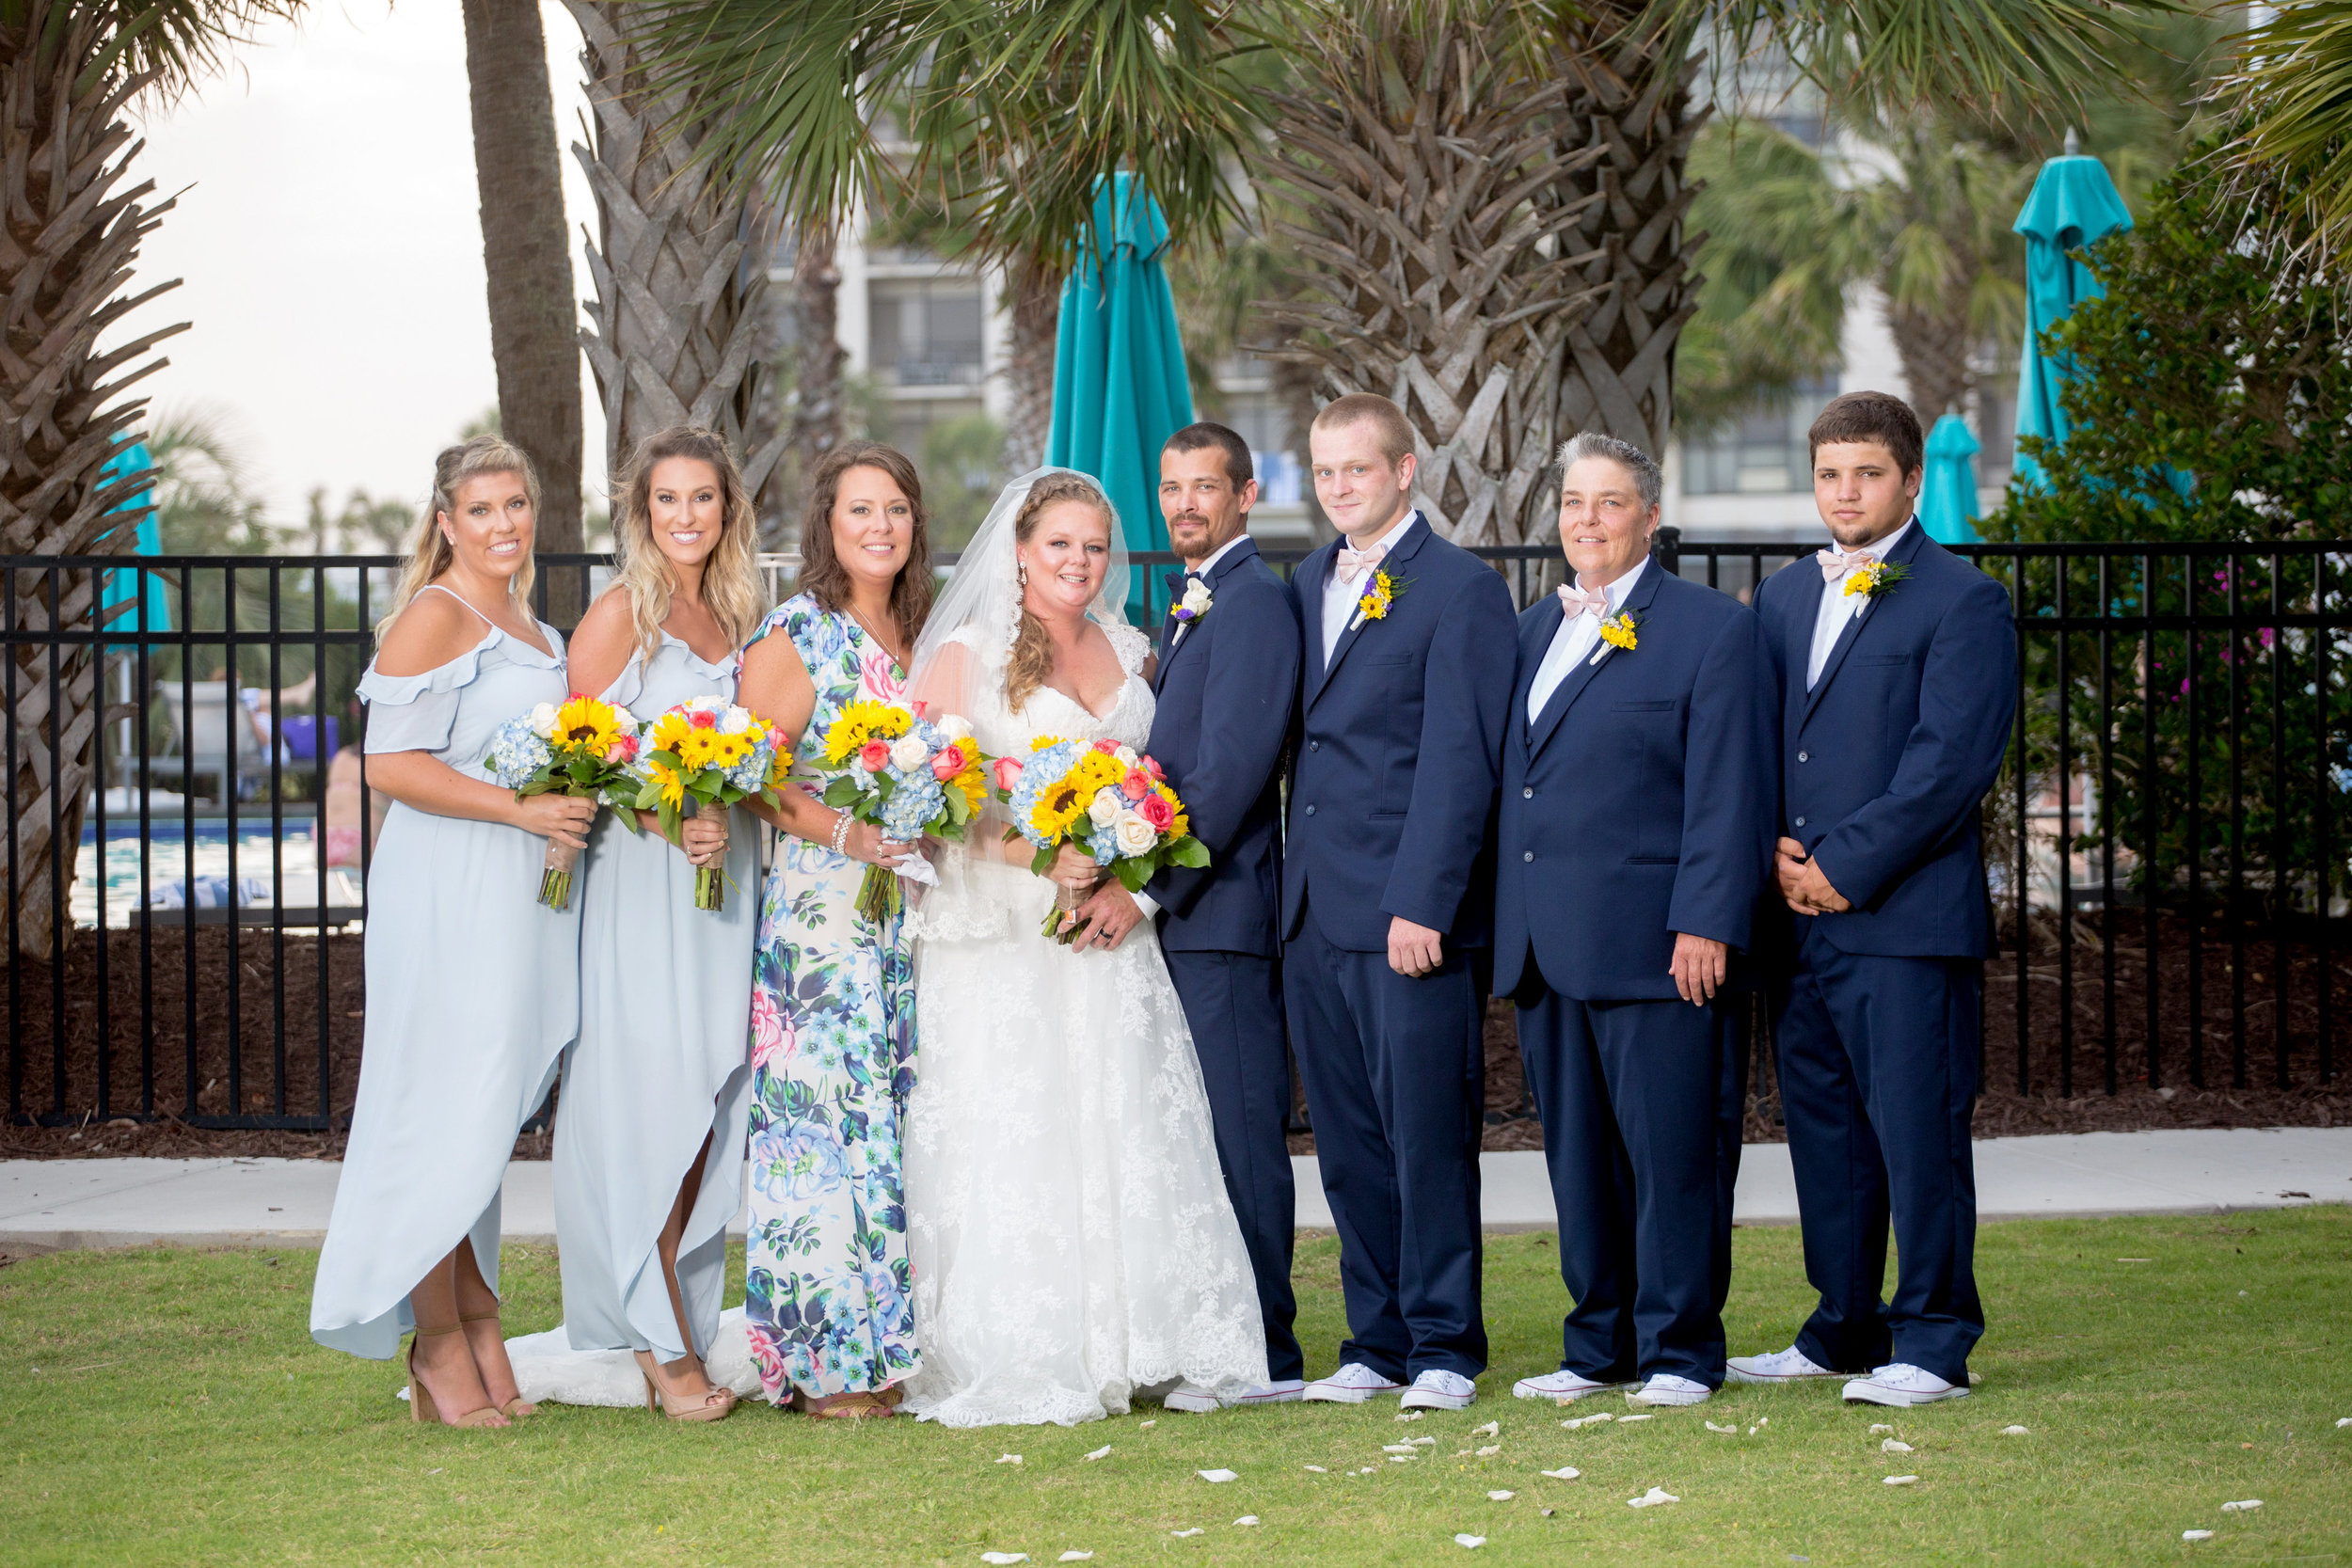 Summer Destination Wedding - Myrtle Beach17.jpg